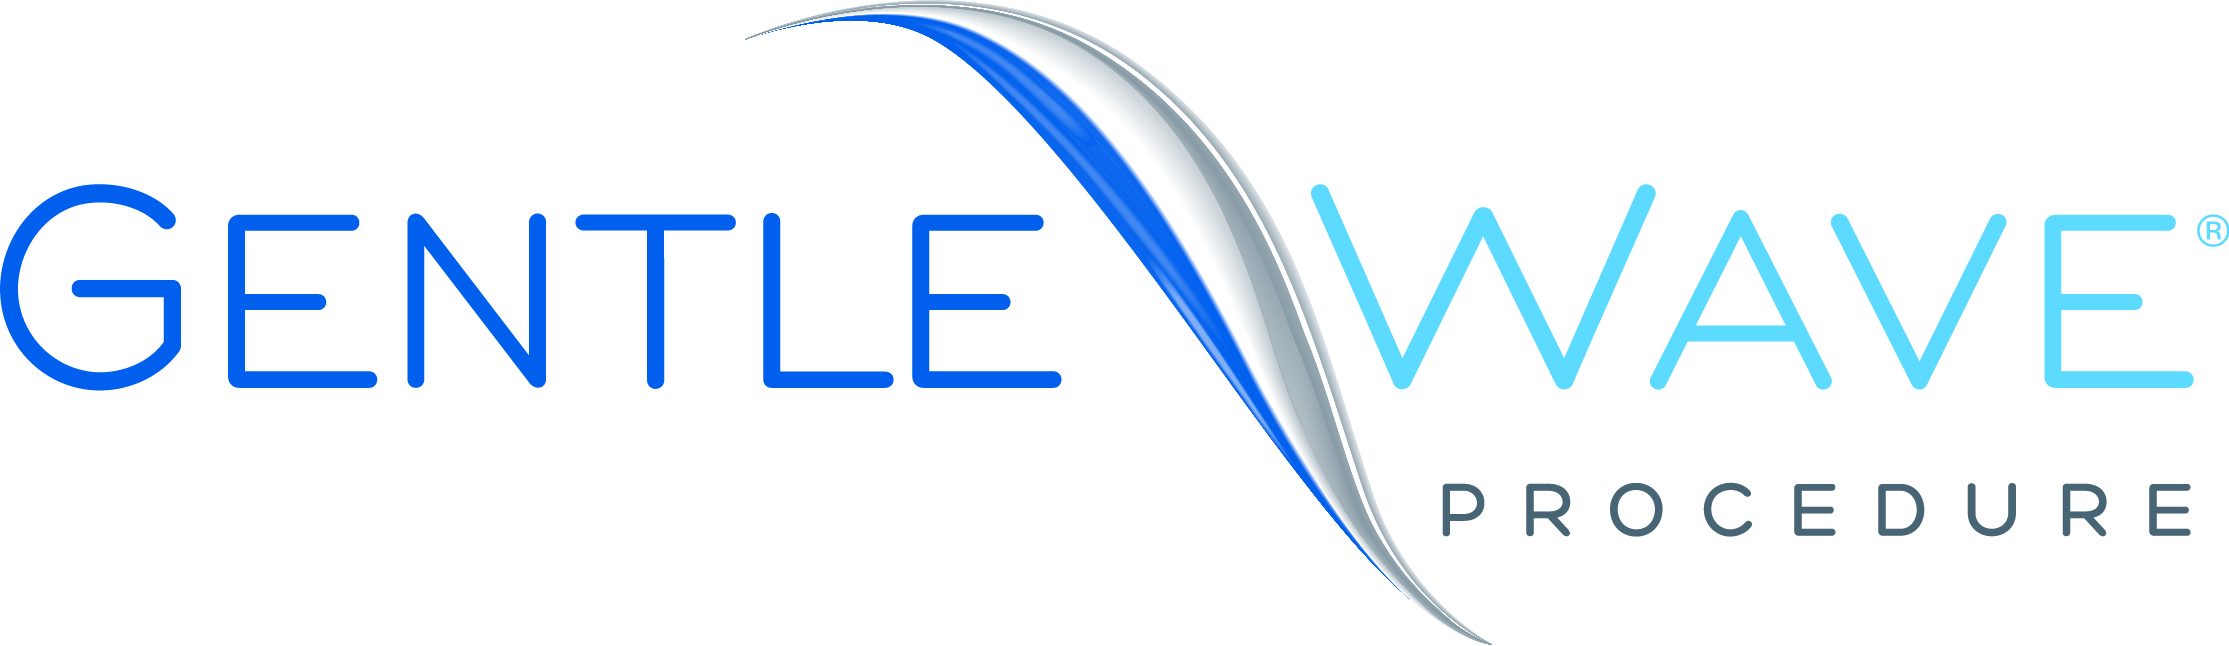 Our team offers the GentleWave® Procedure, a state-of-the-art alternative to standard root canal treatment. Extremely effective at cleaning and disinfecting, GentleWave® reduces the chance of failure over time.